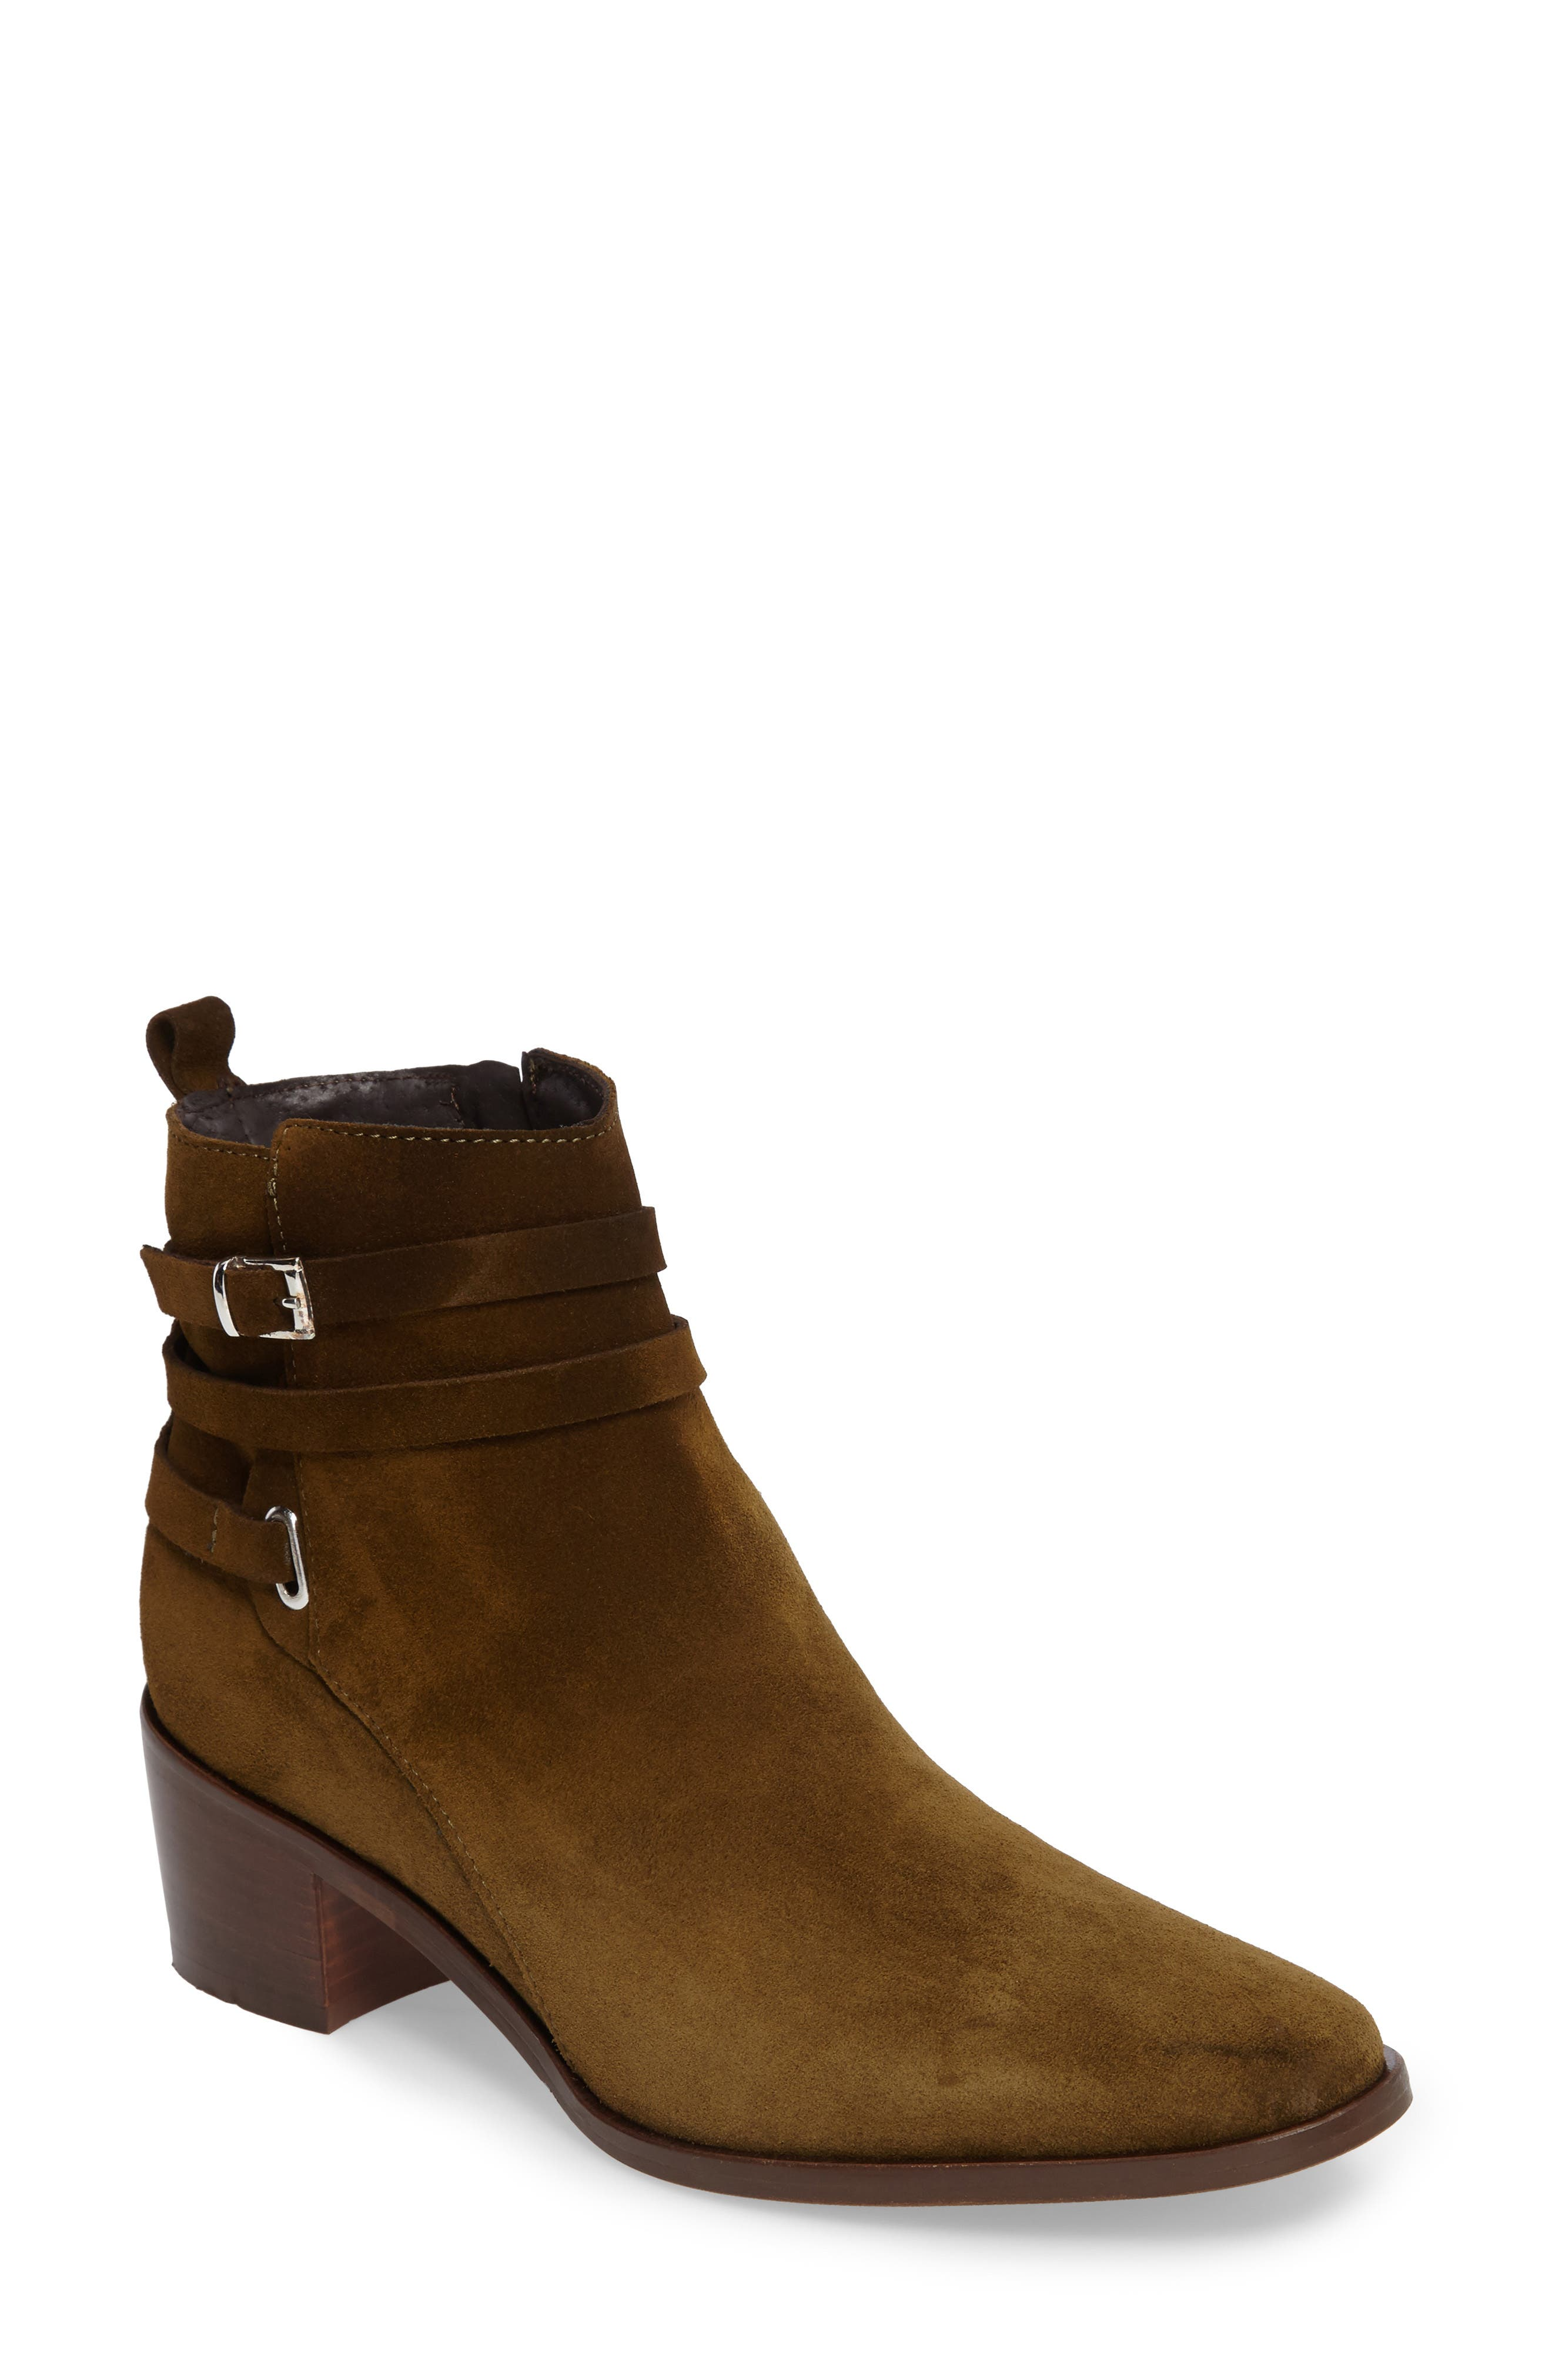 Hunter Bootie,                             Main thumbnail 1, color,                             Khaki Suede